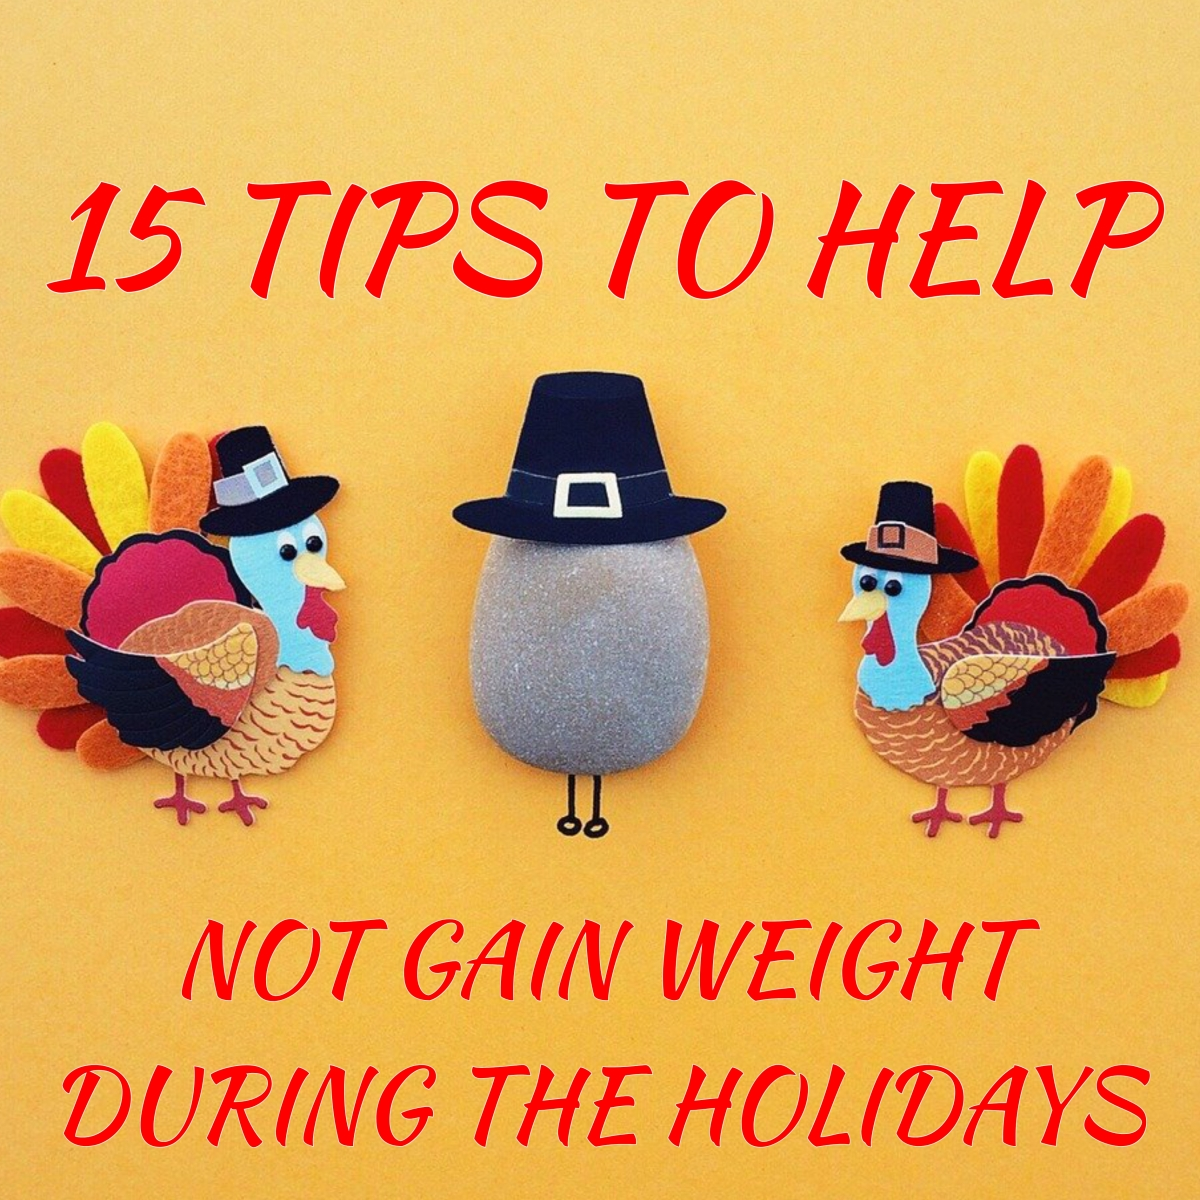 15 Tips To NOT Gain Weight During The Holidays